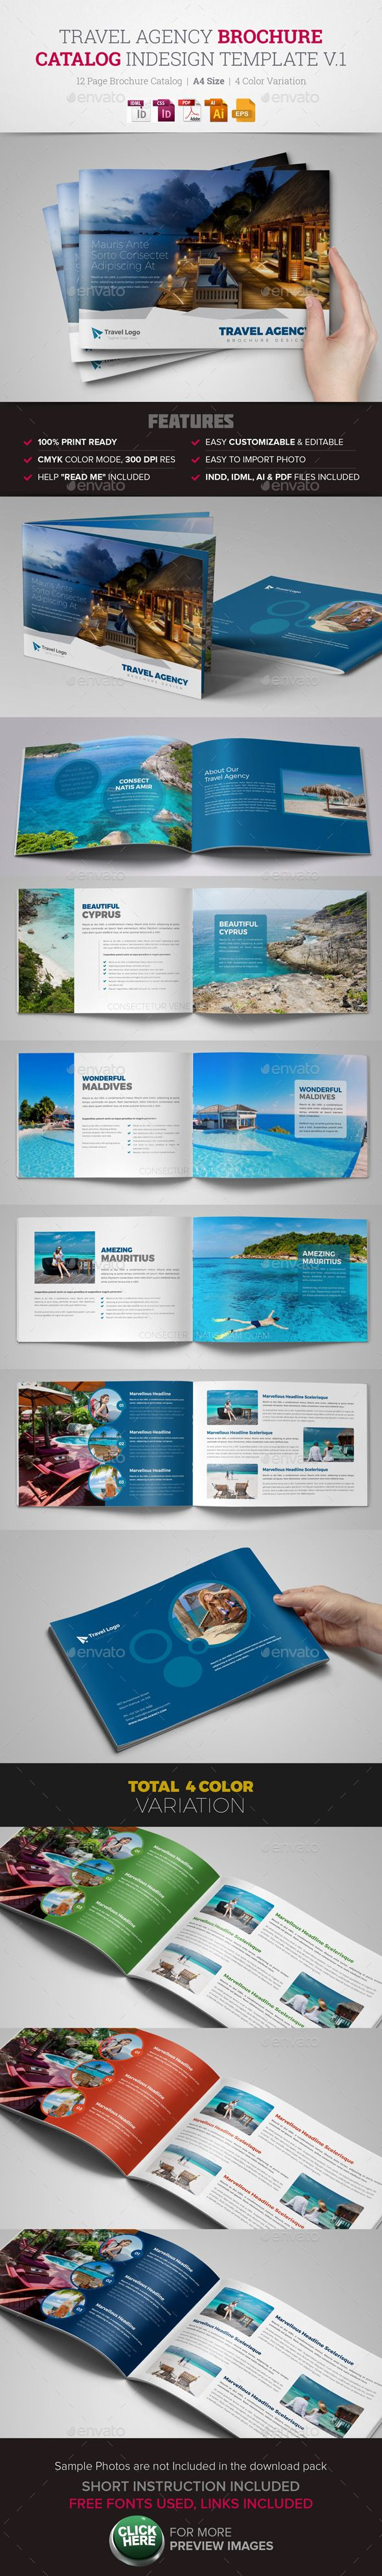 Travel Agency Brochure Catalog